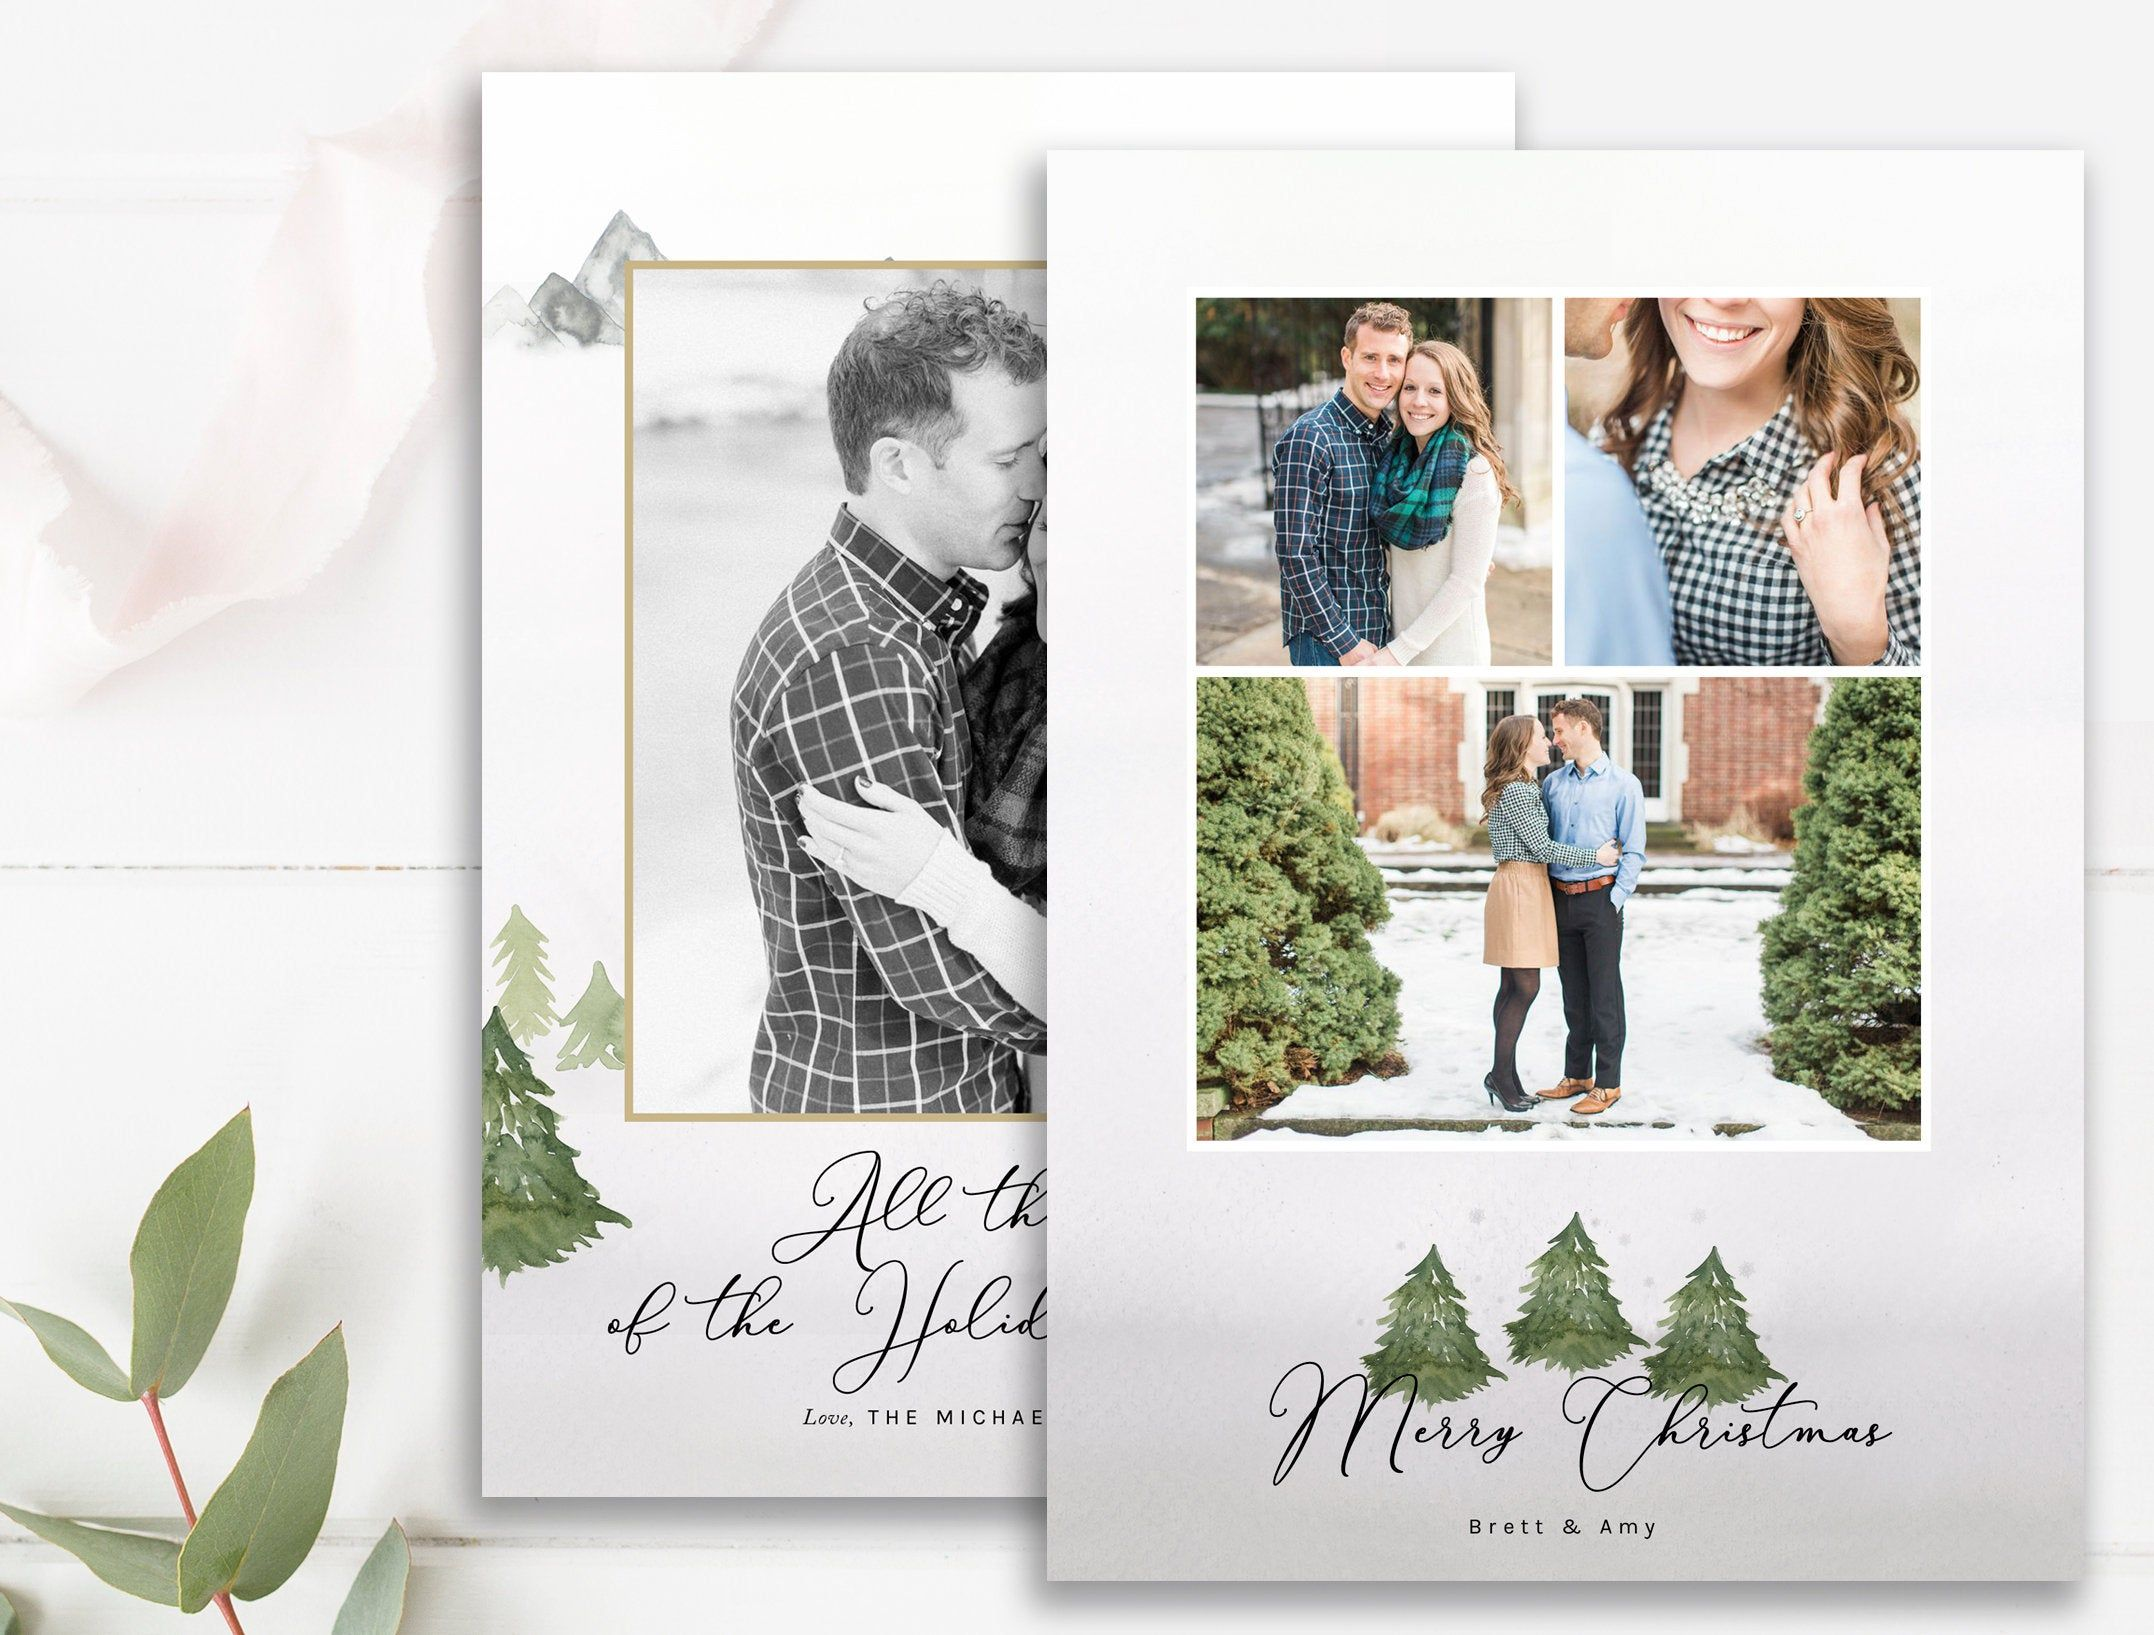 Rustic Elegant Christmas Photo Card Template Multiple Layout Etsy Christmas Photo Card Template Photo Card Template Christmas Photo Cards